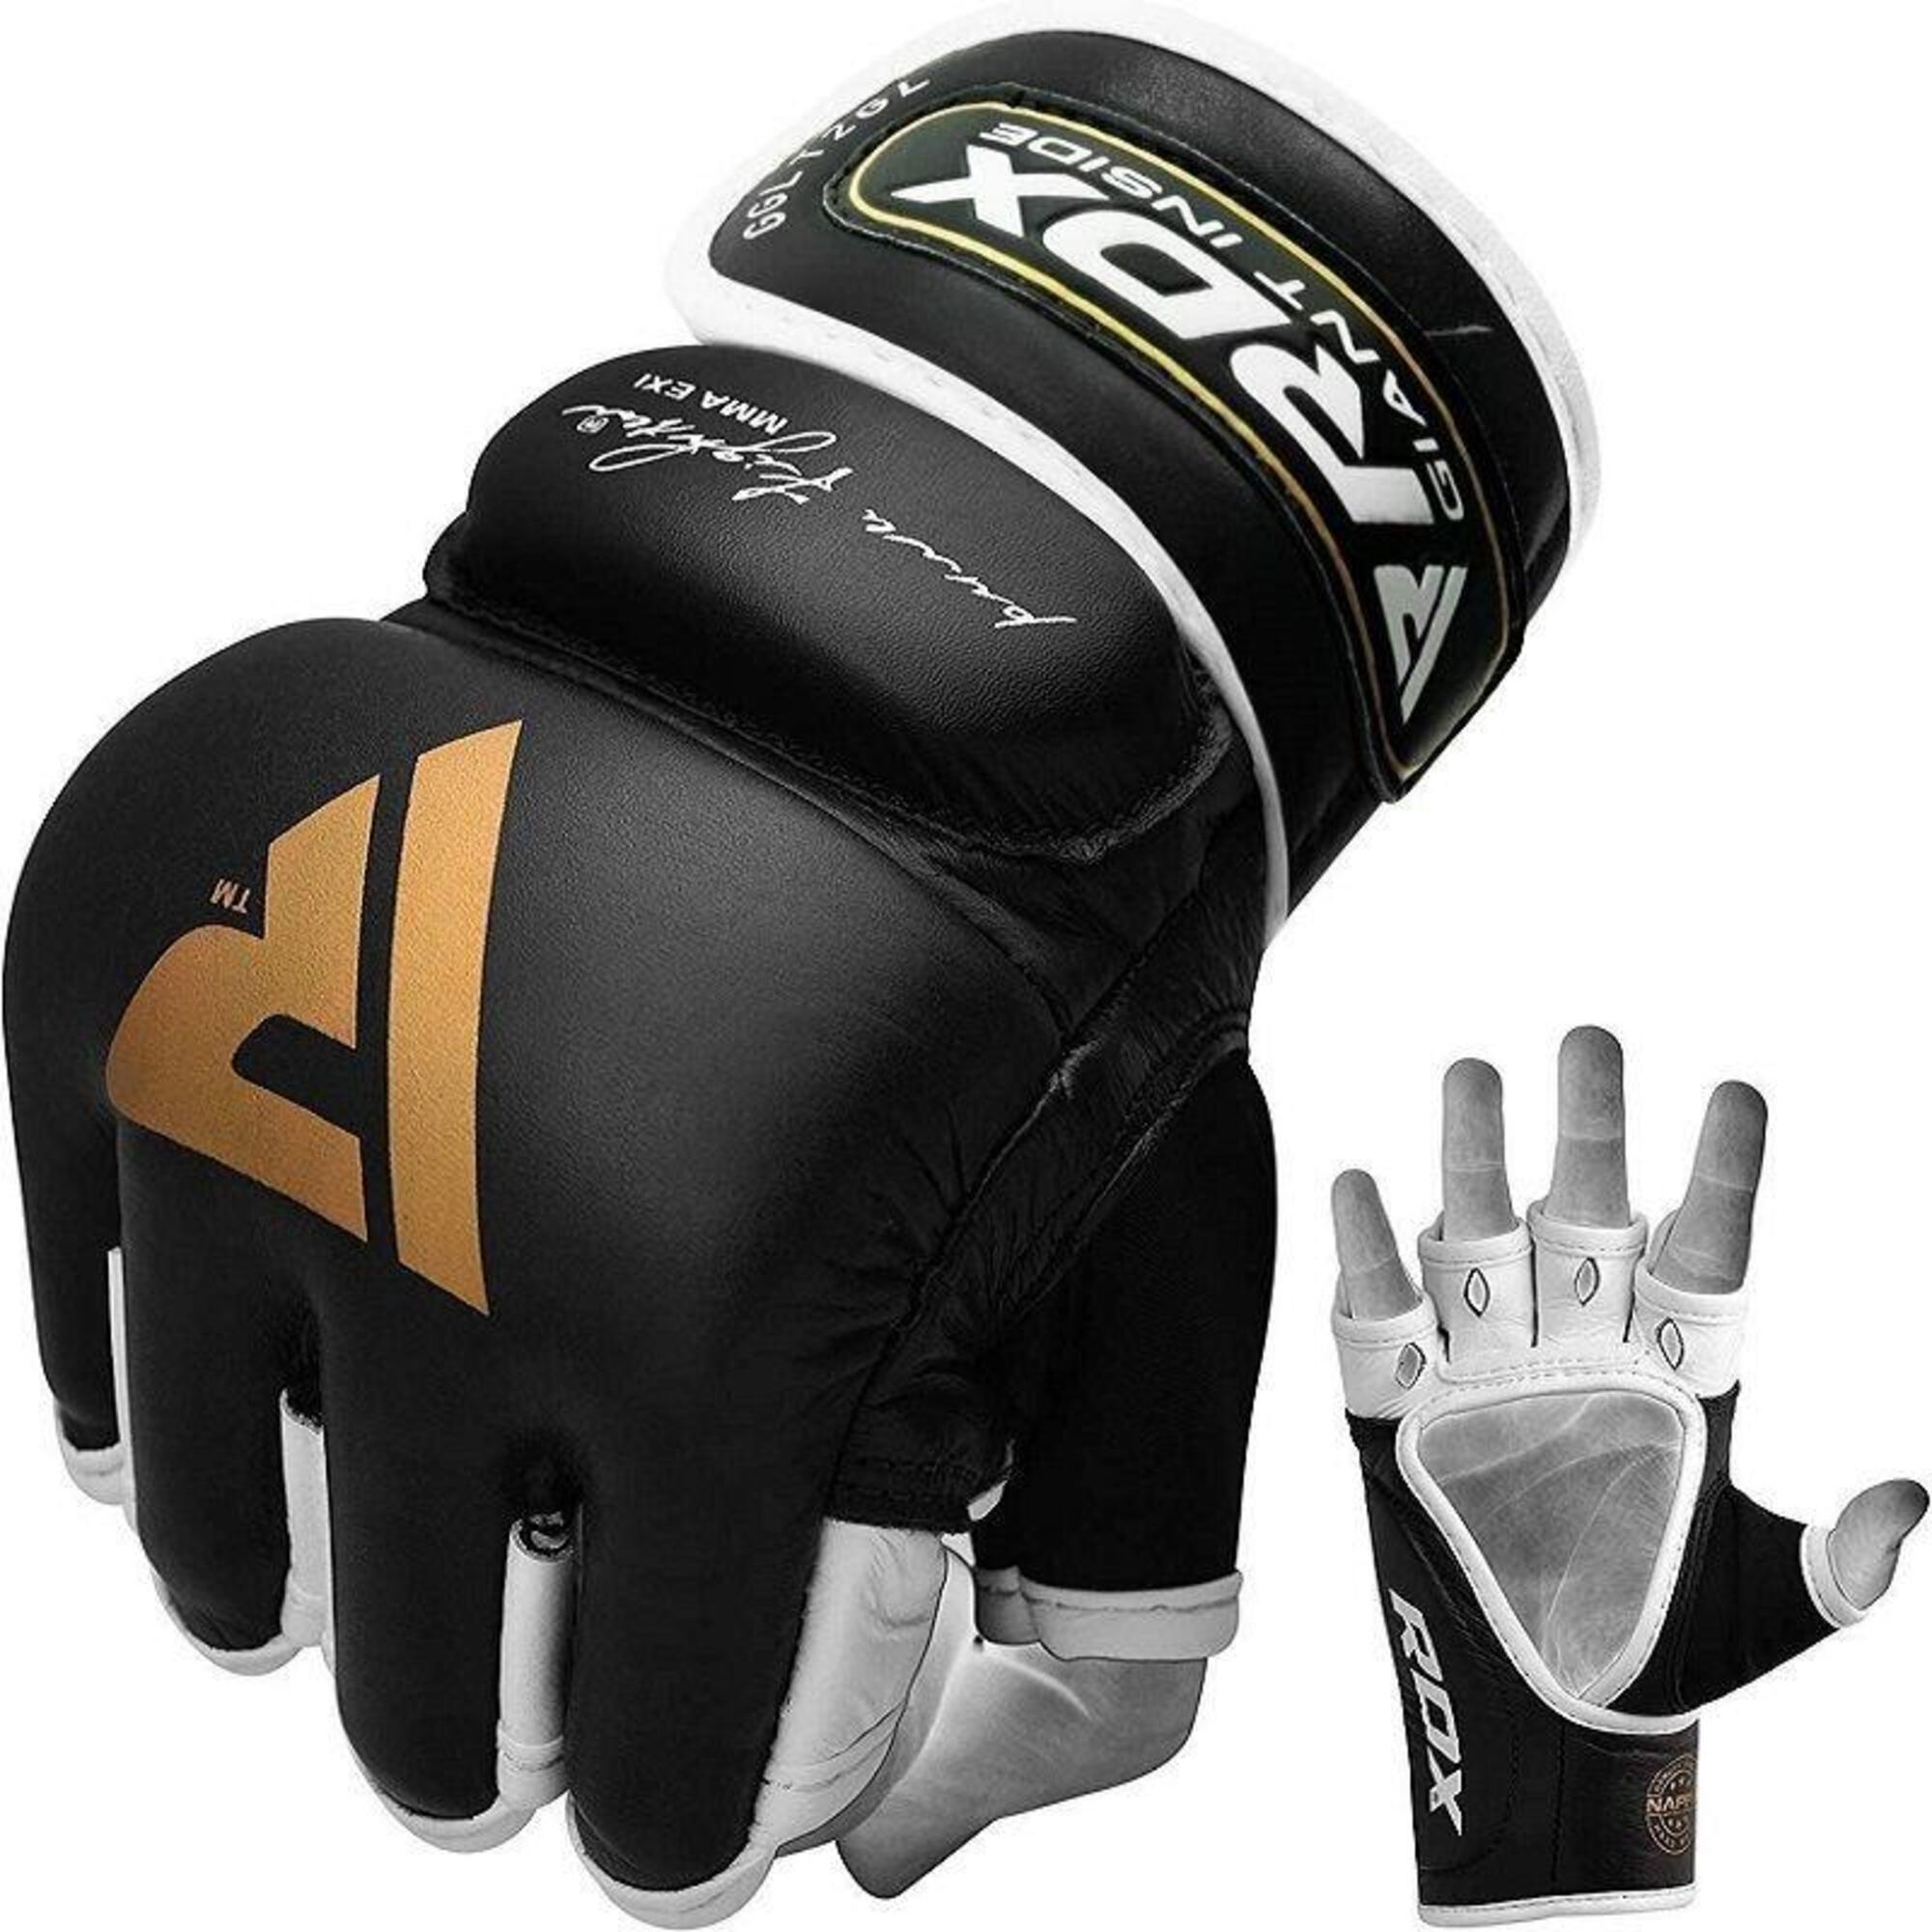 T2 Leather Gants MMA - Or / Noir - Cuir - Large